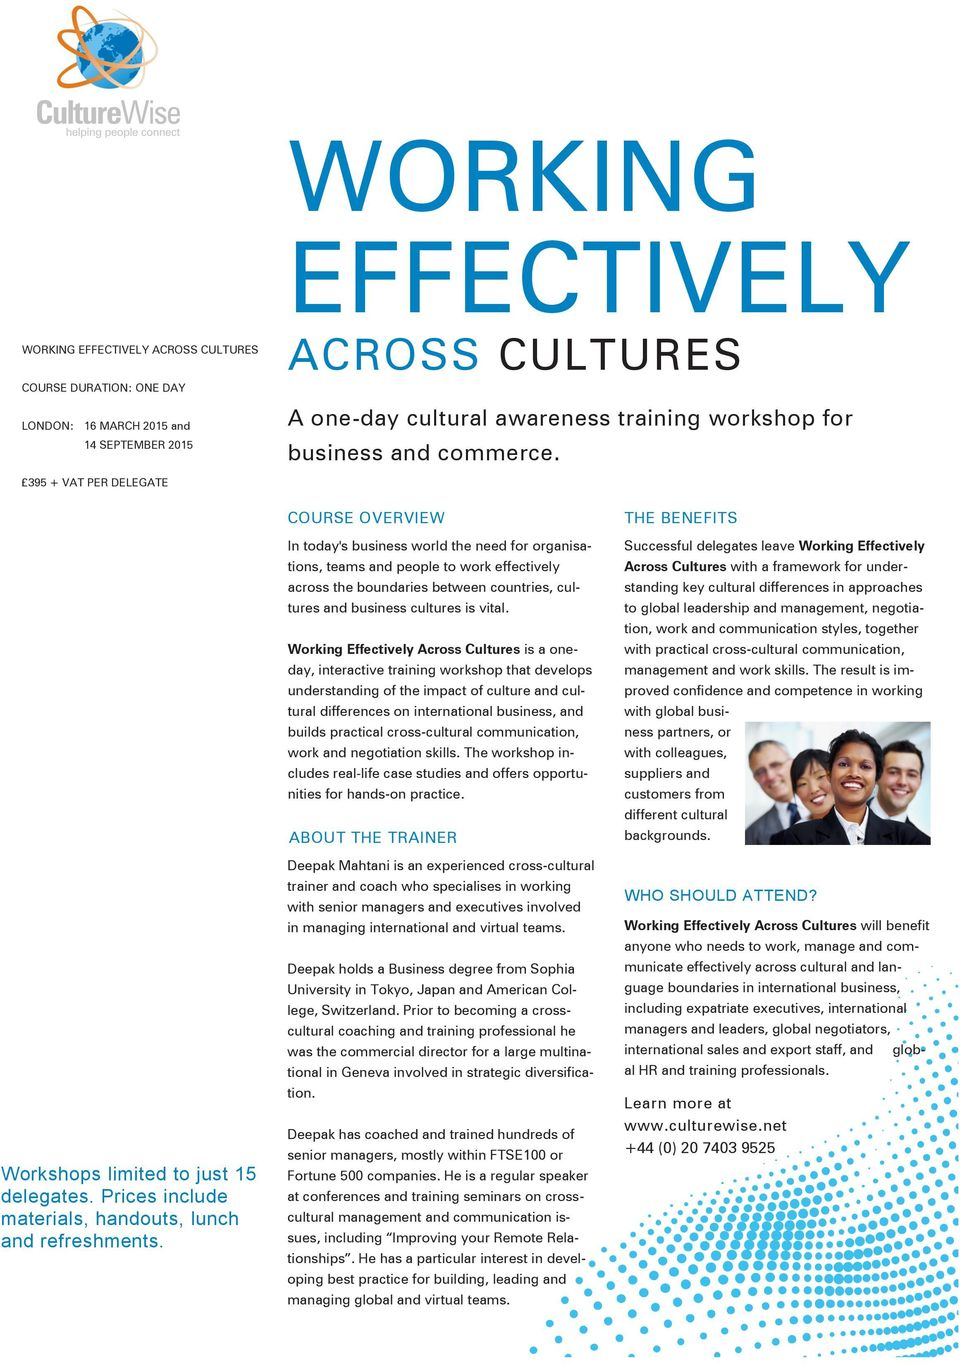 COURSE OVERVIEW In today's business world the need for organisations, teams and people to work effectively across the boundaries between countries, cultures and business cultures is vital.